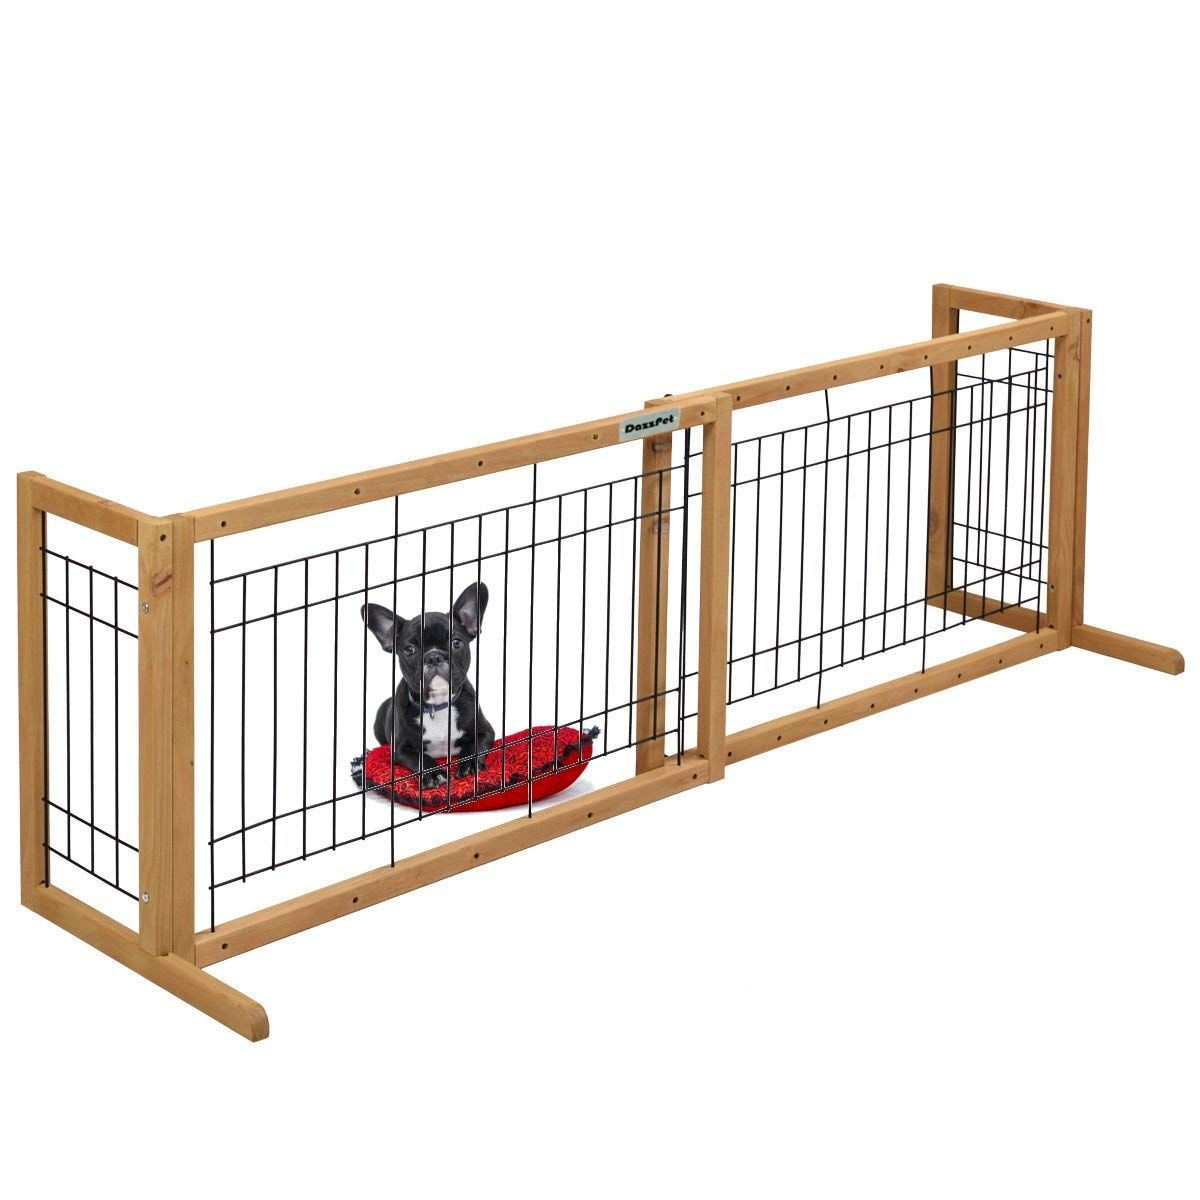 Dazzpet Free Standing Pet Gates Extra Wide Indoor Small Dog Gate Expandable Puppy Safety Gate Wooden Long Freestanding Pet Gate Dog Gate Pet Safety Gate